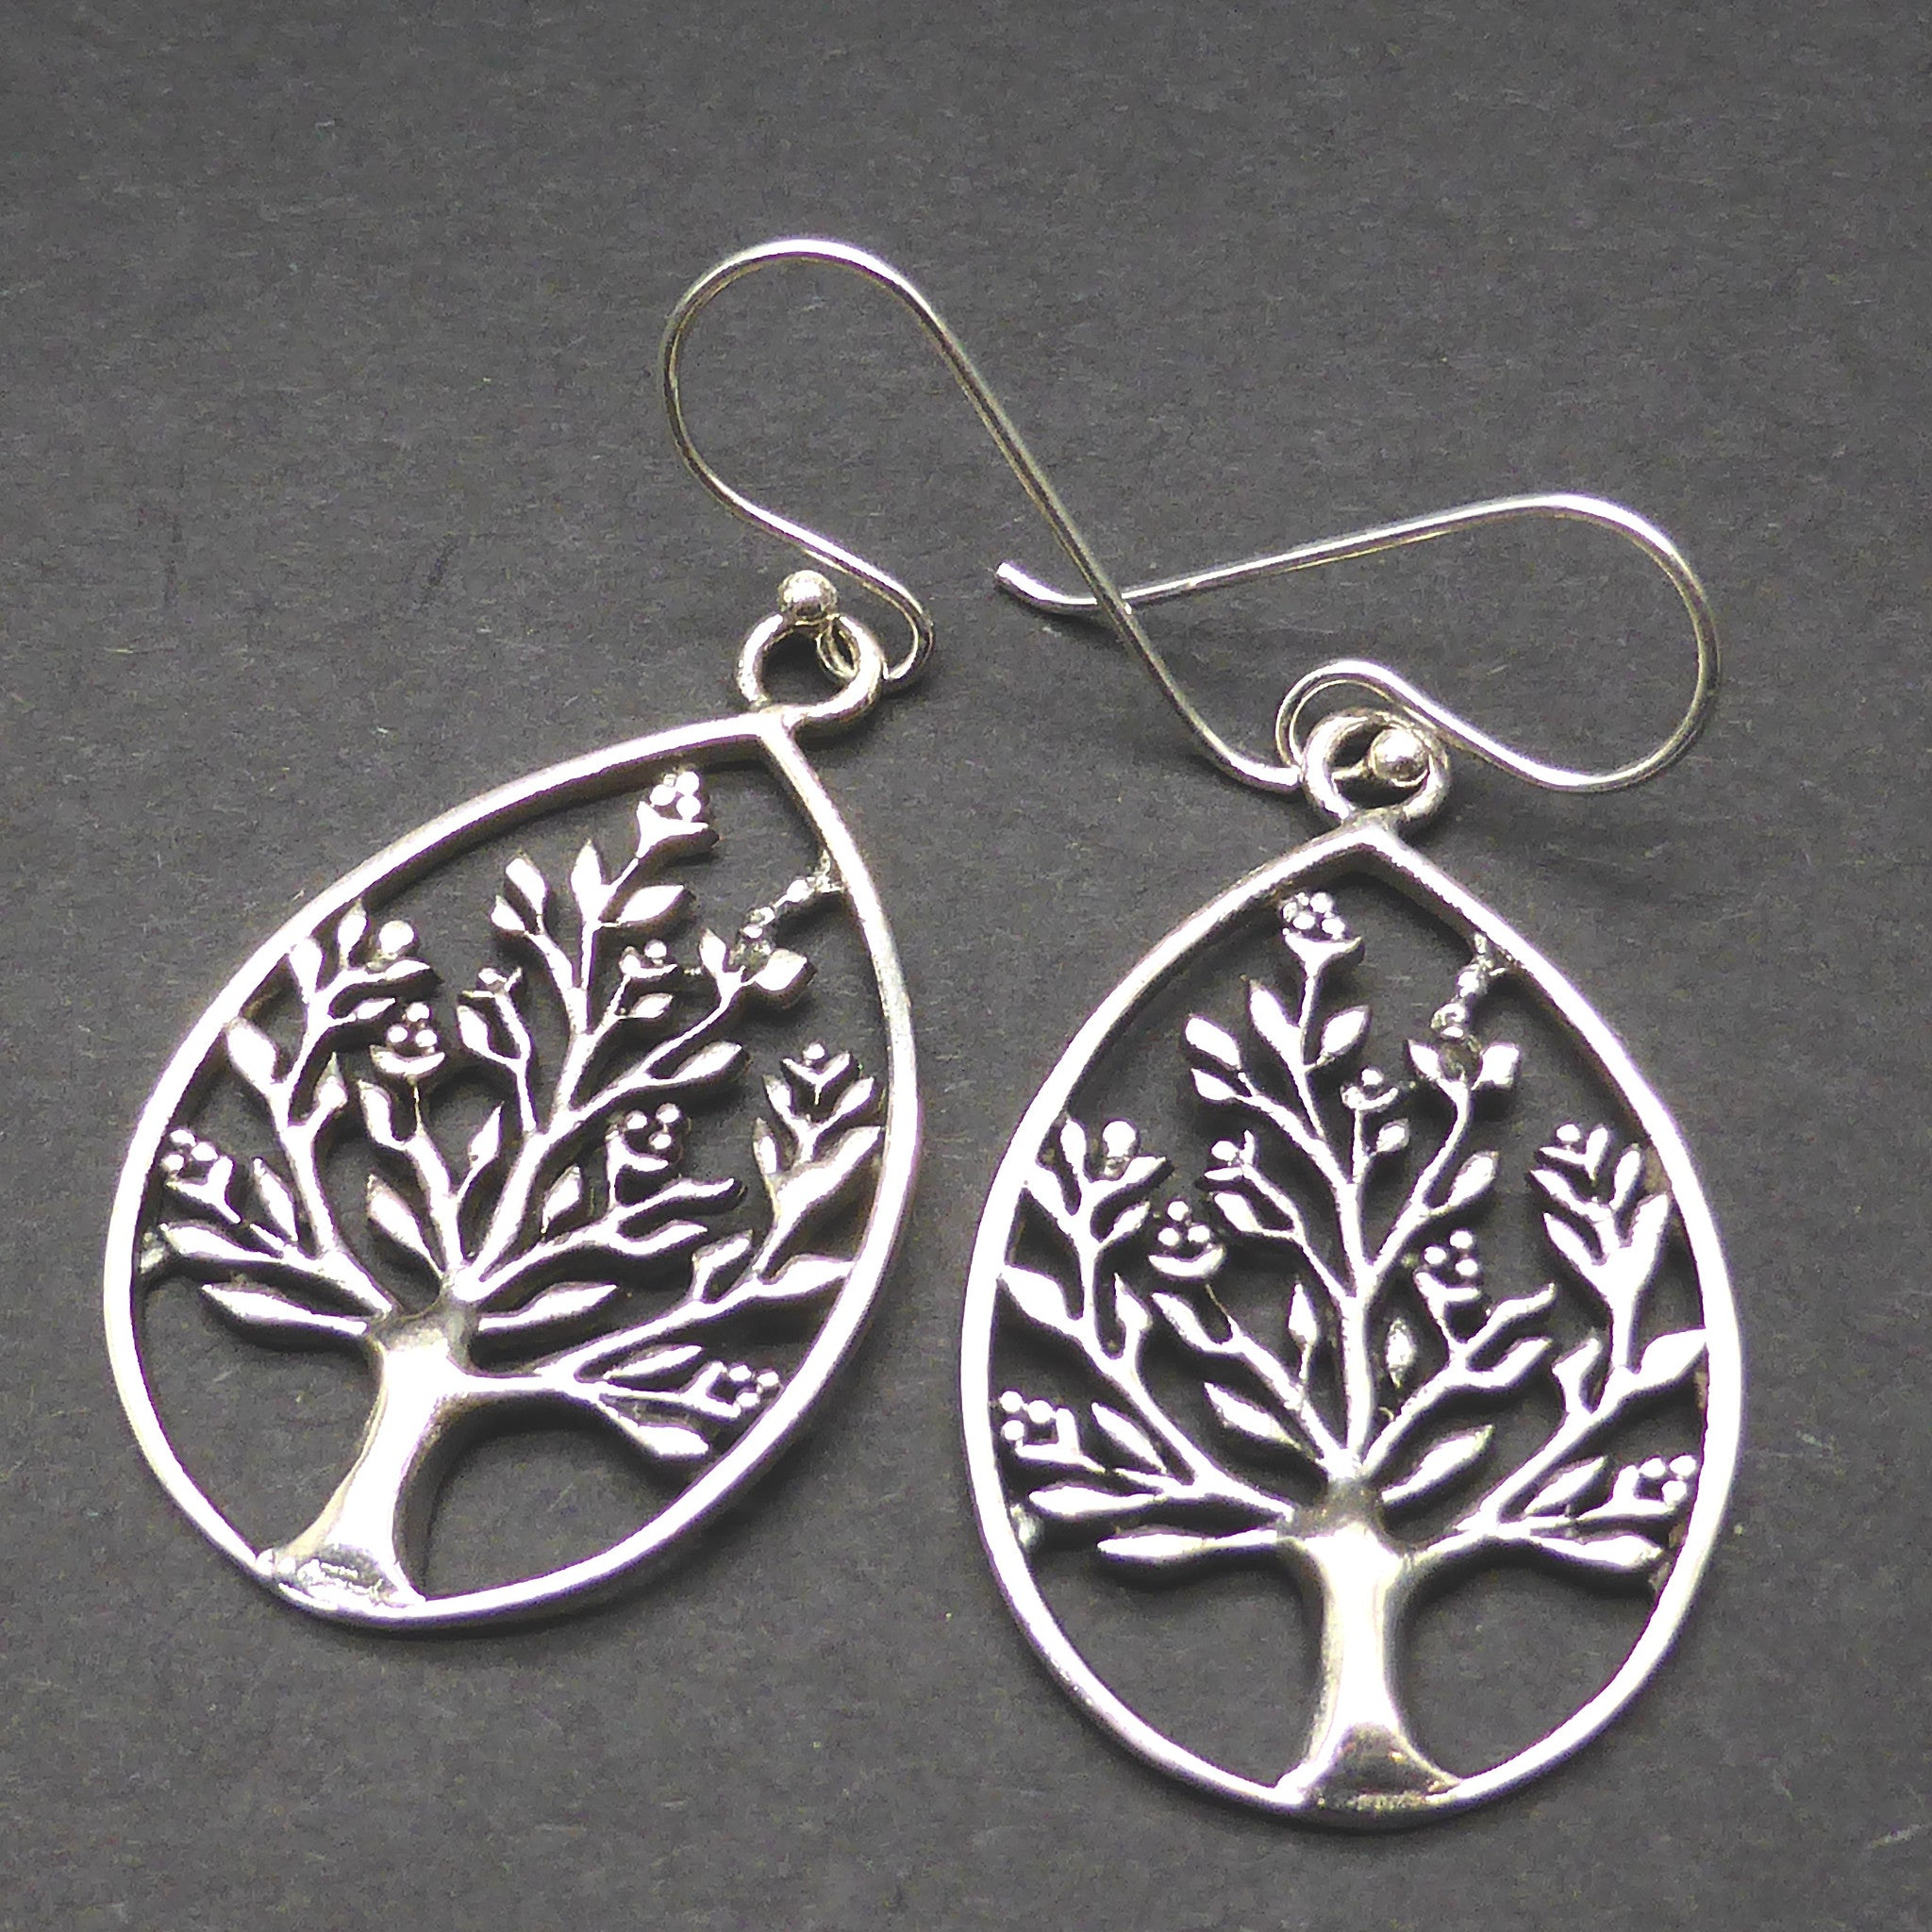 Earrings Tree in blossom | 925 Sterling silver, Drop 35 mm | Tear drop shape | Australian Supplier | Melbourne Australia